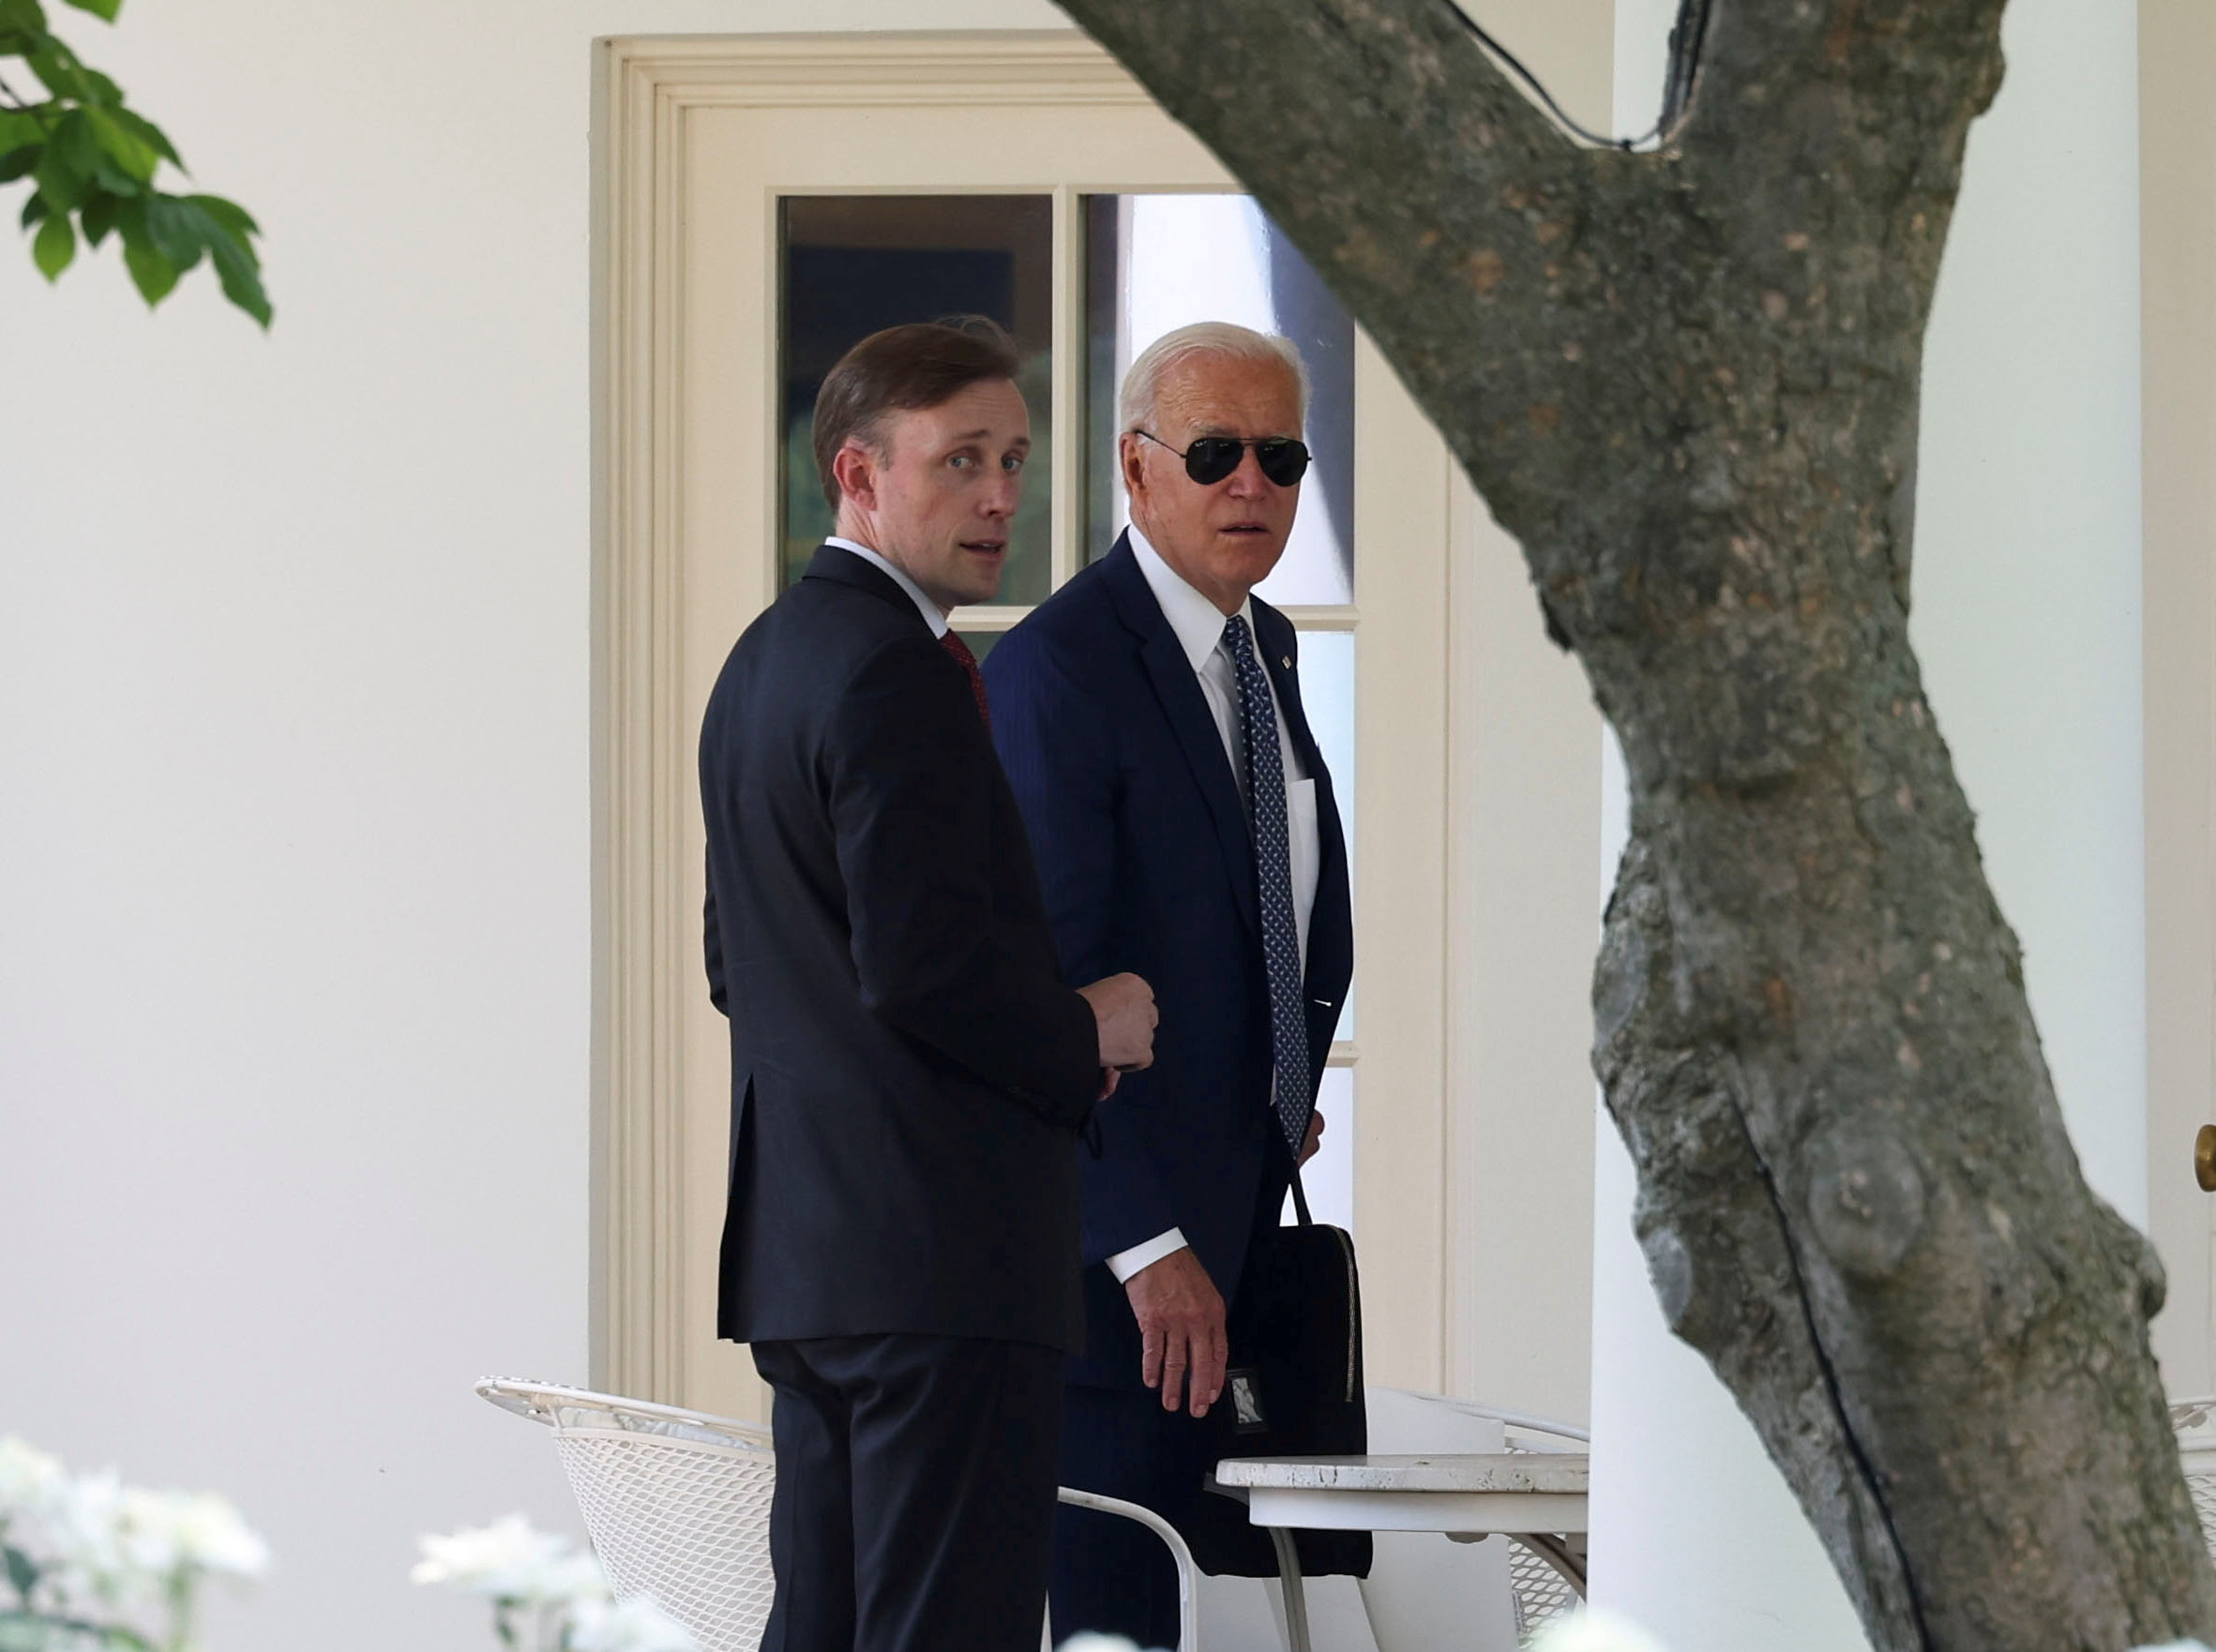 National Security adviser Jake Sullivan accompanies U.S. President Joe Biden following a visit to the Office of the Director of National Intelligence as they they return to the White House Washington, U.S., July 27, 2021. REUTERS/Stringer File Photo